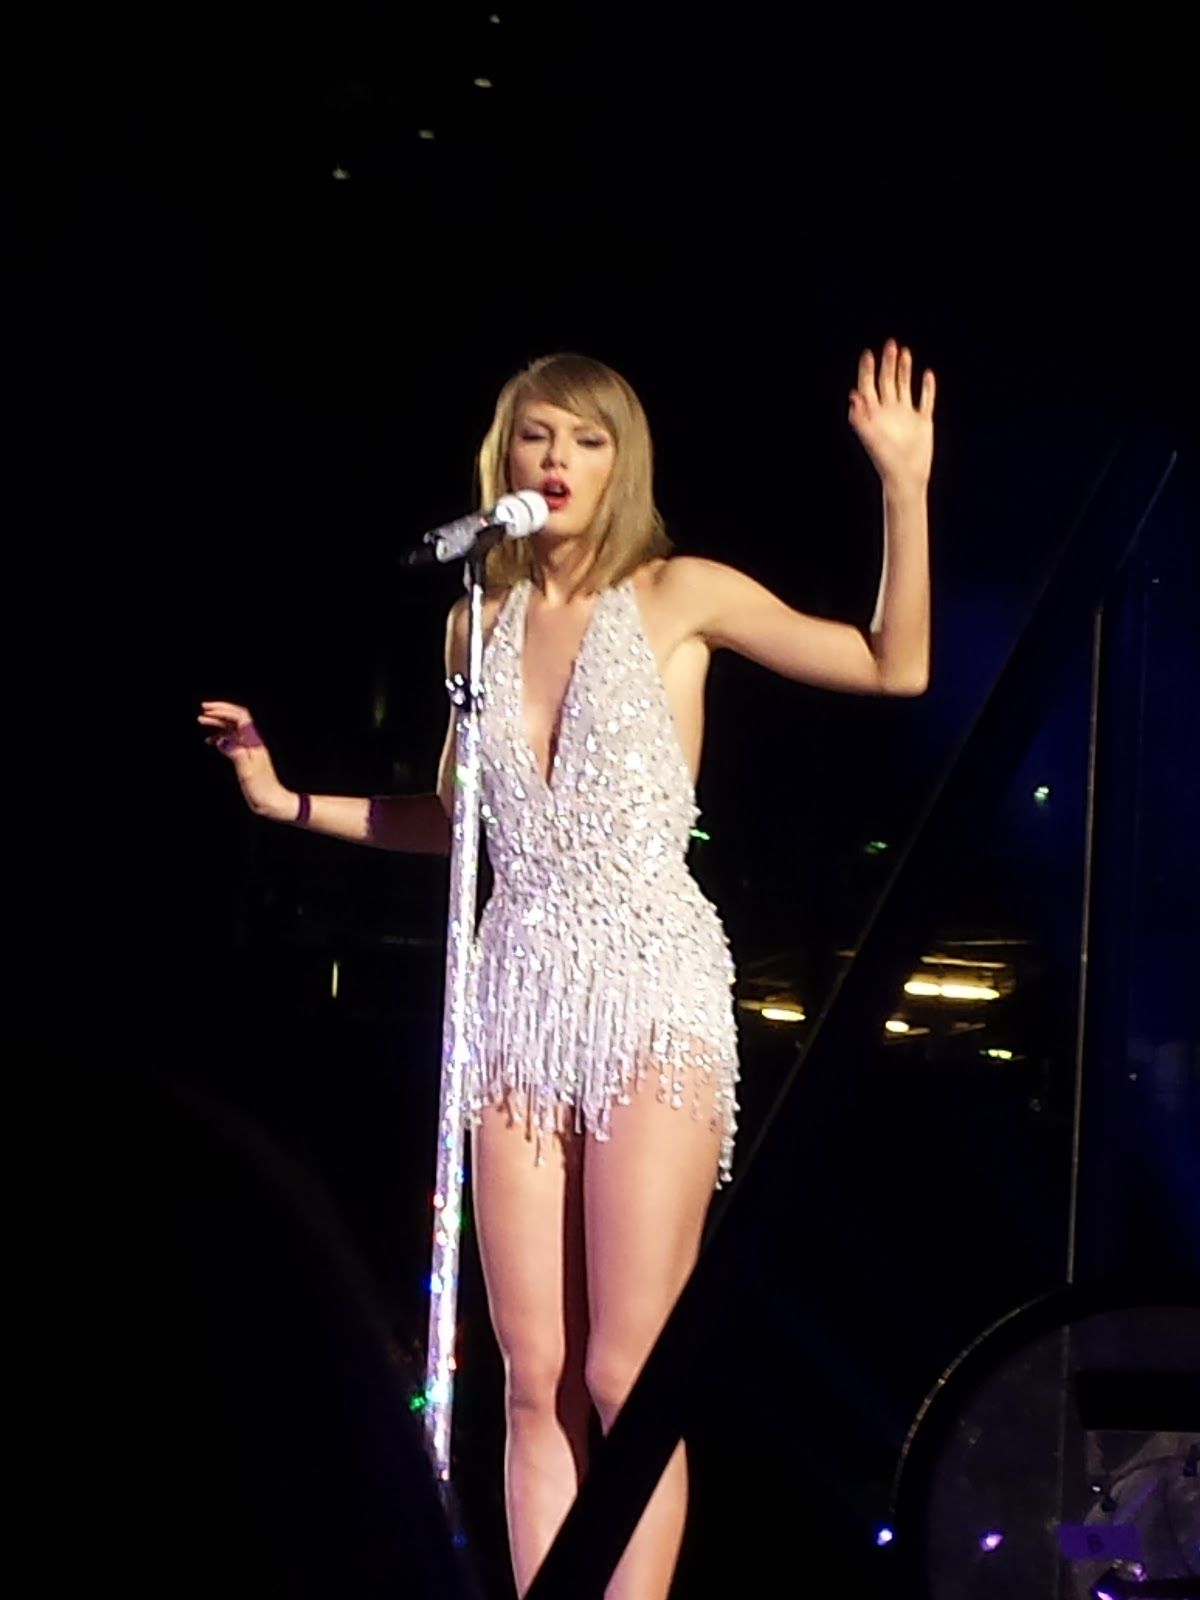 Photos From The Pit At Taylor Swift S 1989 Tour In Detroit At Ford S Field Spring 2015 Taylor Swift Ford Field Taylor